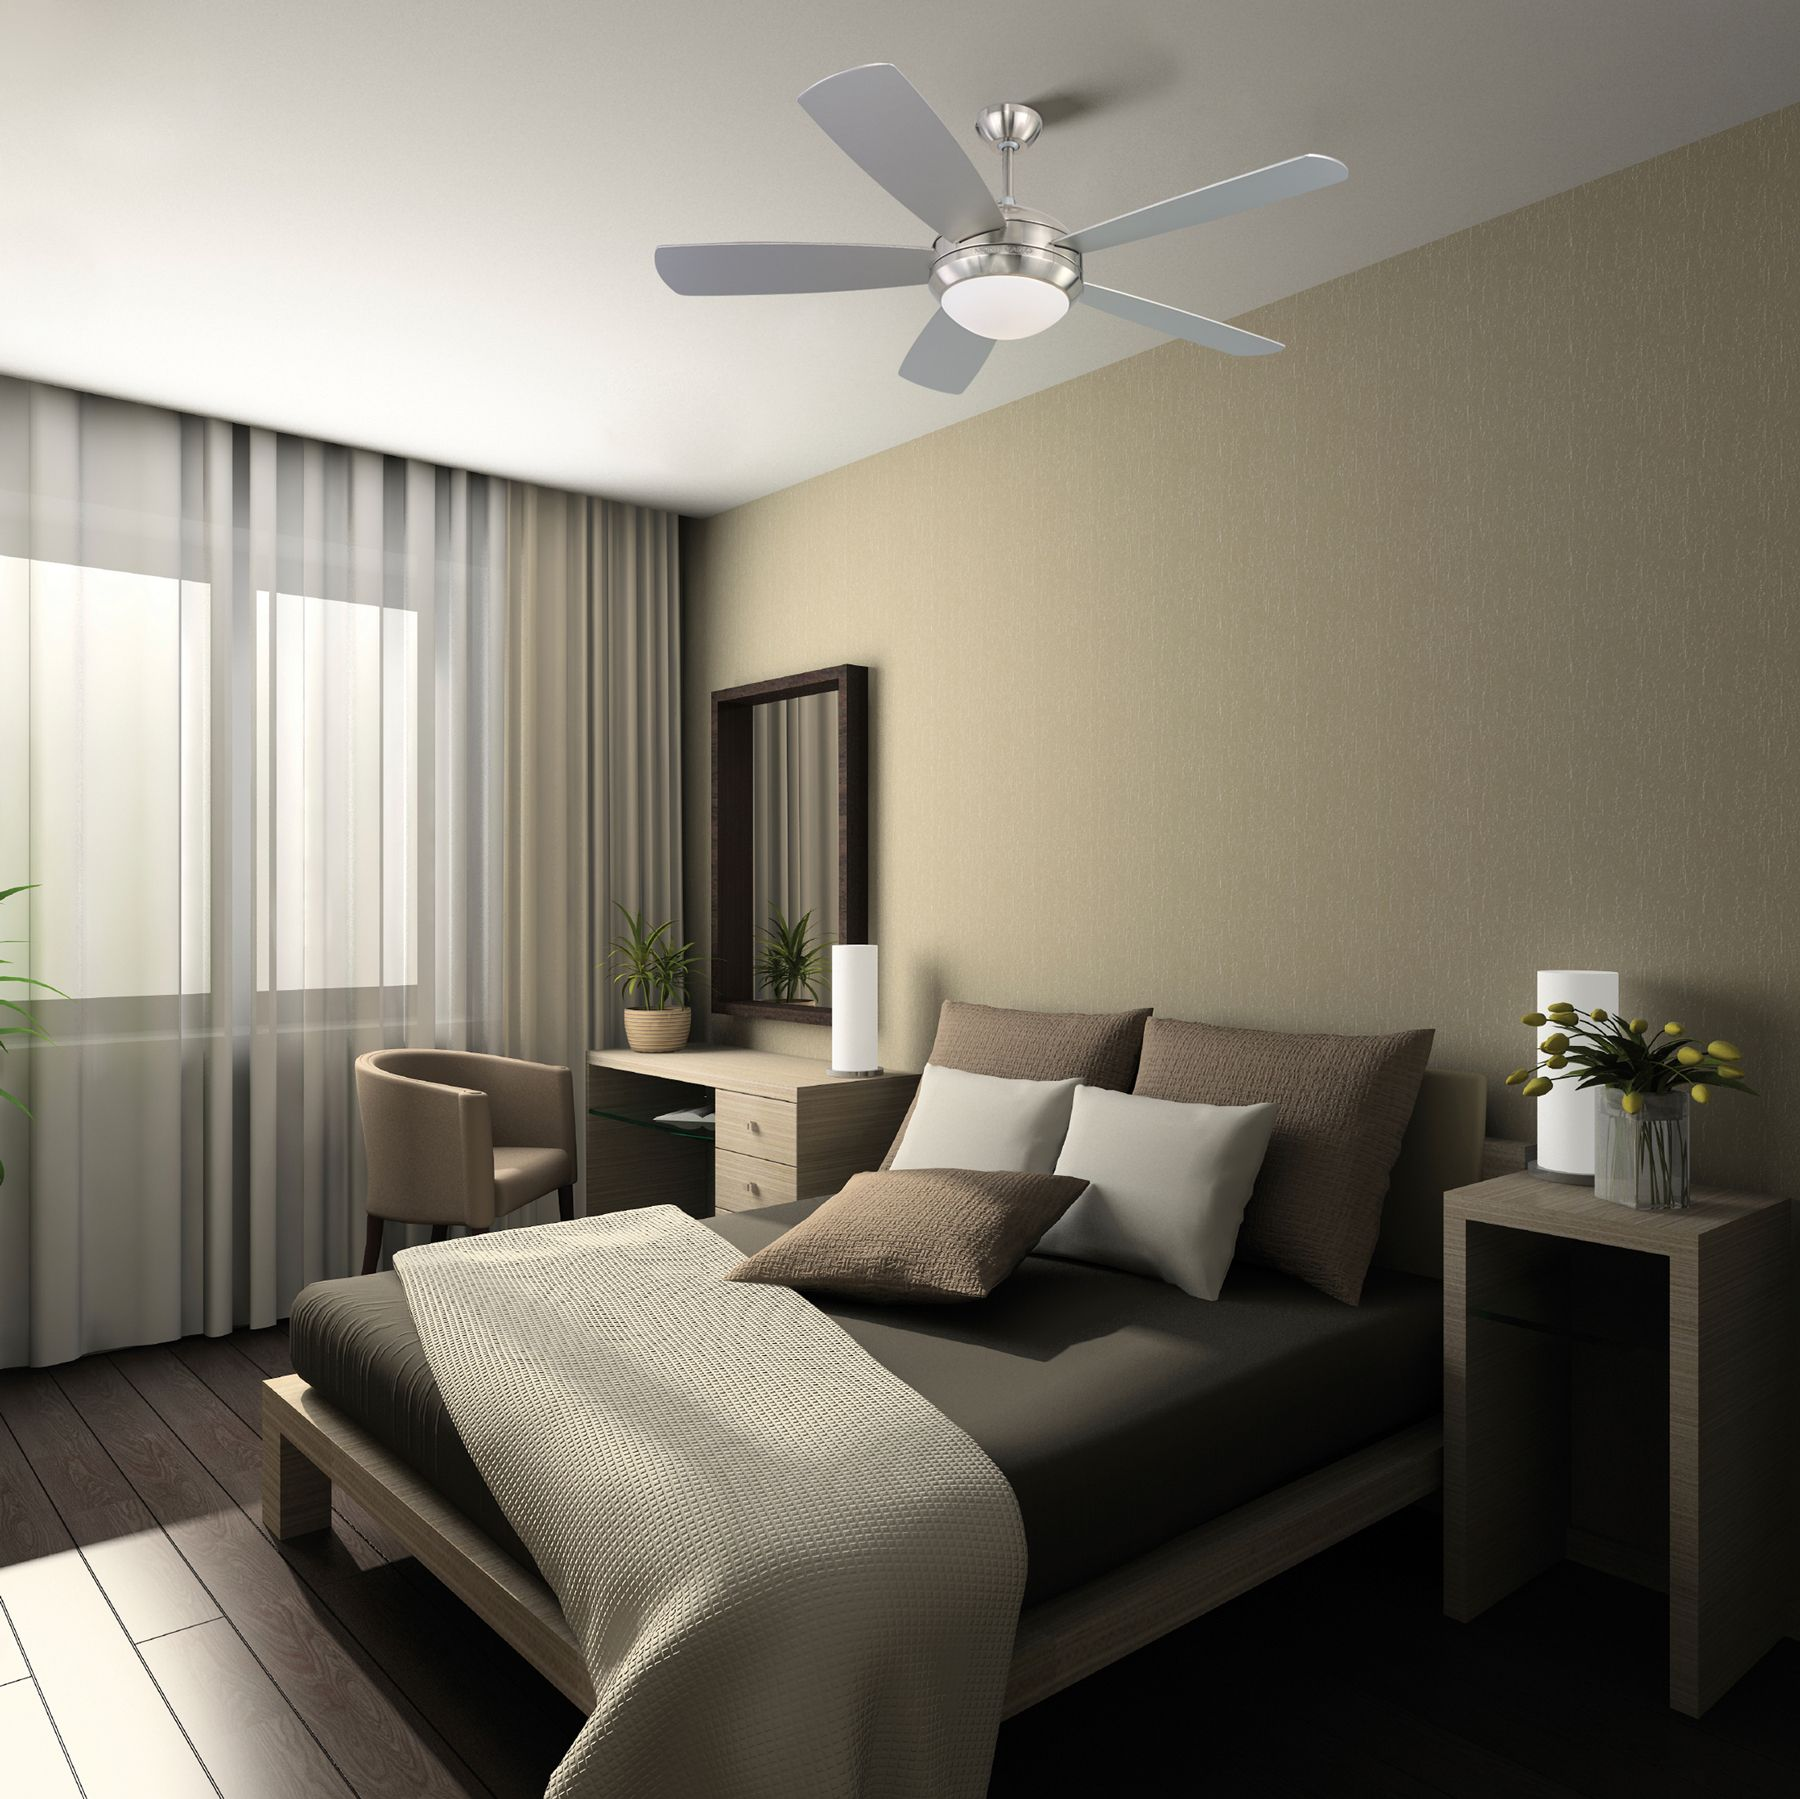 Discus Ceiling Fan Monte Carlo at Lightology